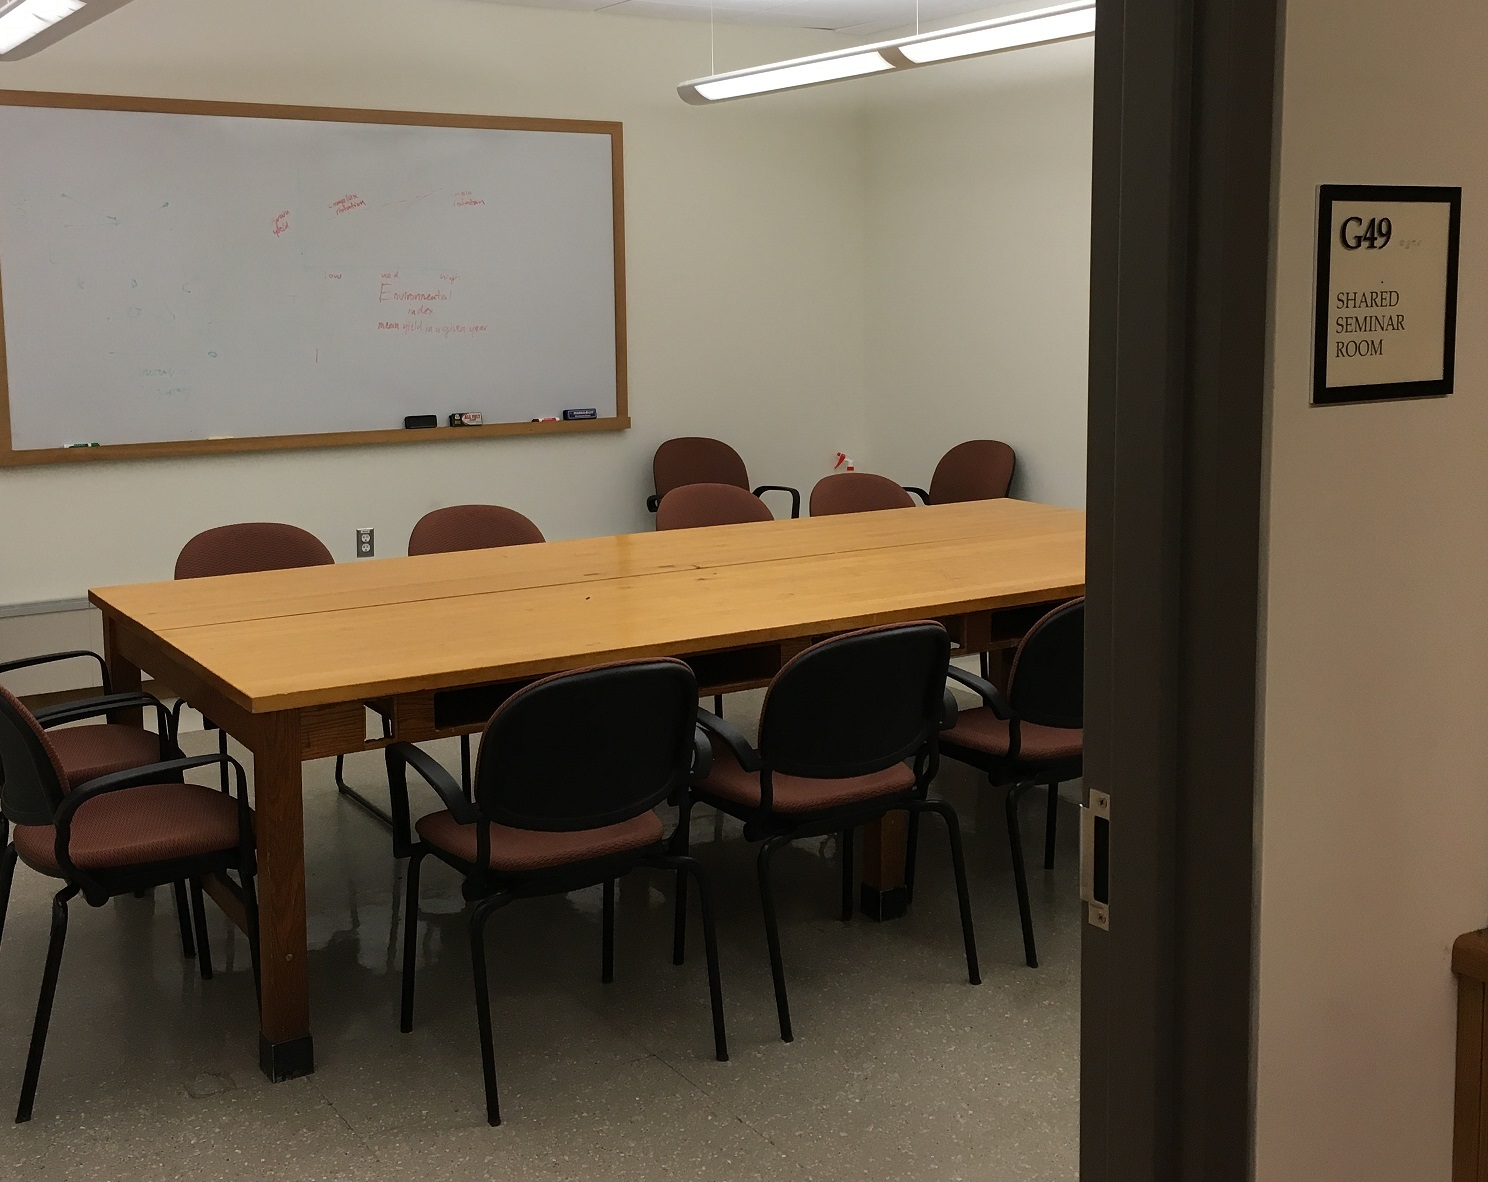 James G49 Conference Room